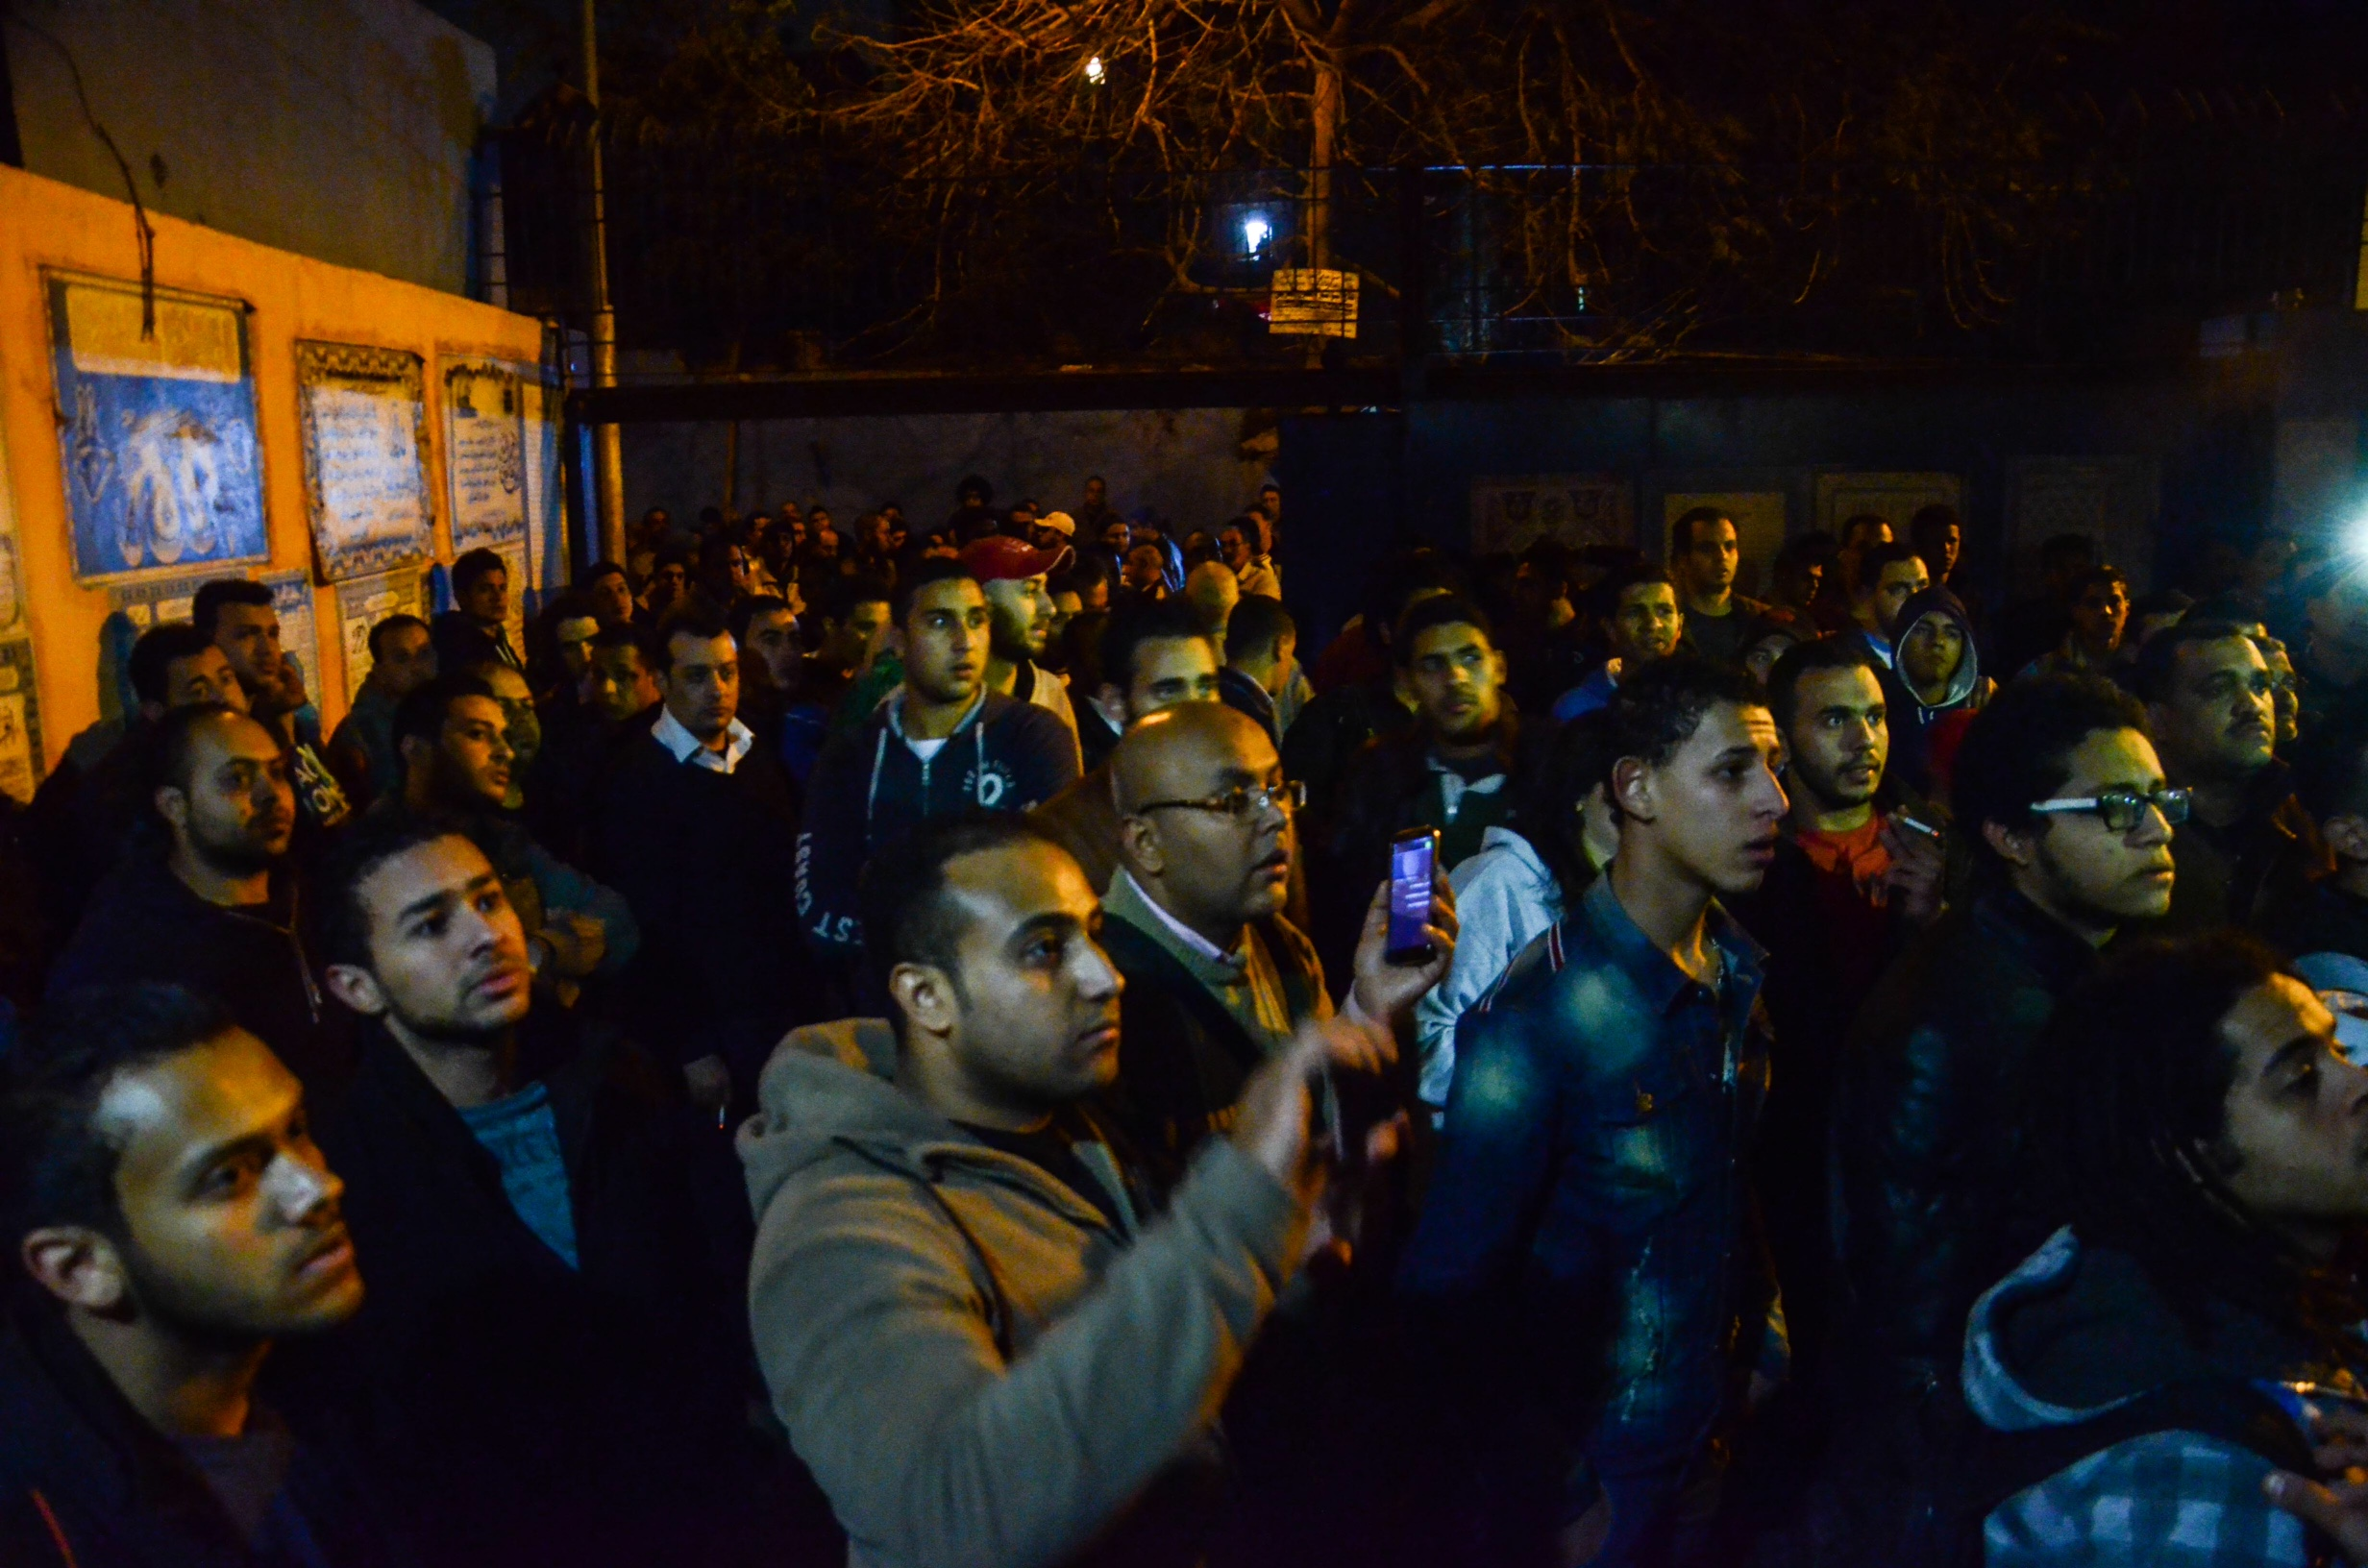 Football Fans and families of killed supporters in front of Zeinhom morgue in Cairo waiting to receive bodies of dead Zamalek fans killed during a violent dispersal by security forces of crowding fans on Sunday before a match between Zamalek and ENPPI (Photo by Mahmoud Abu El-Dahab)